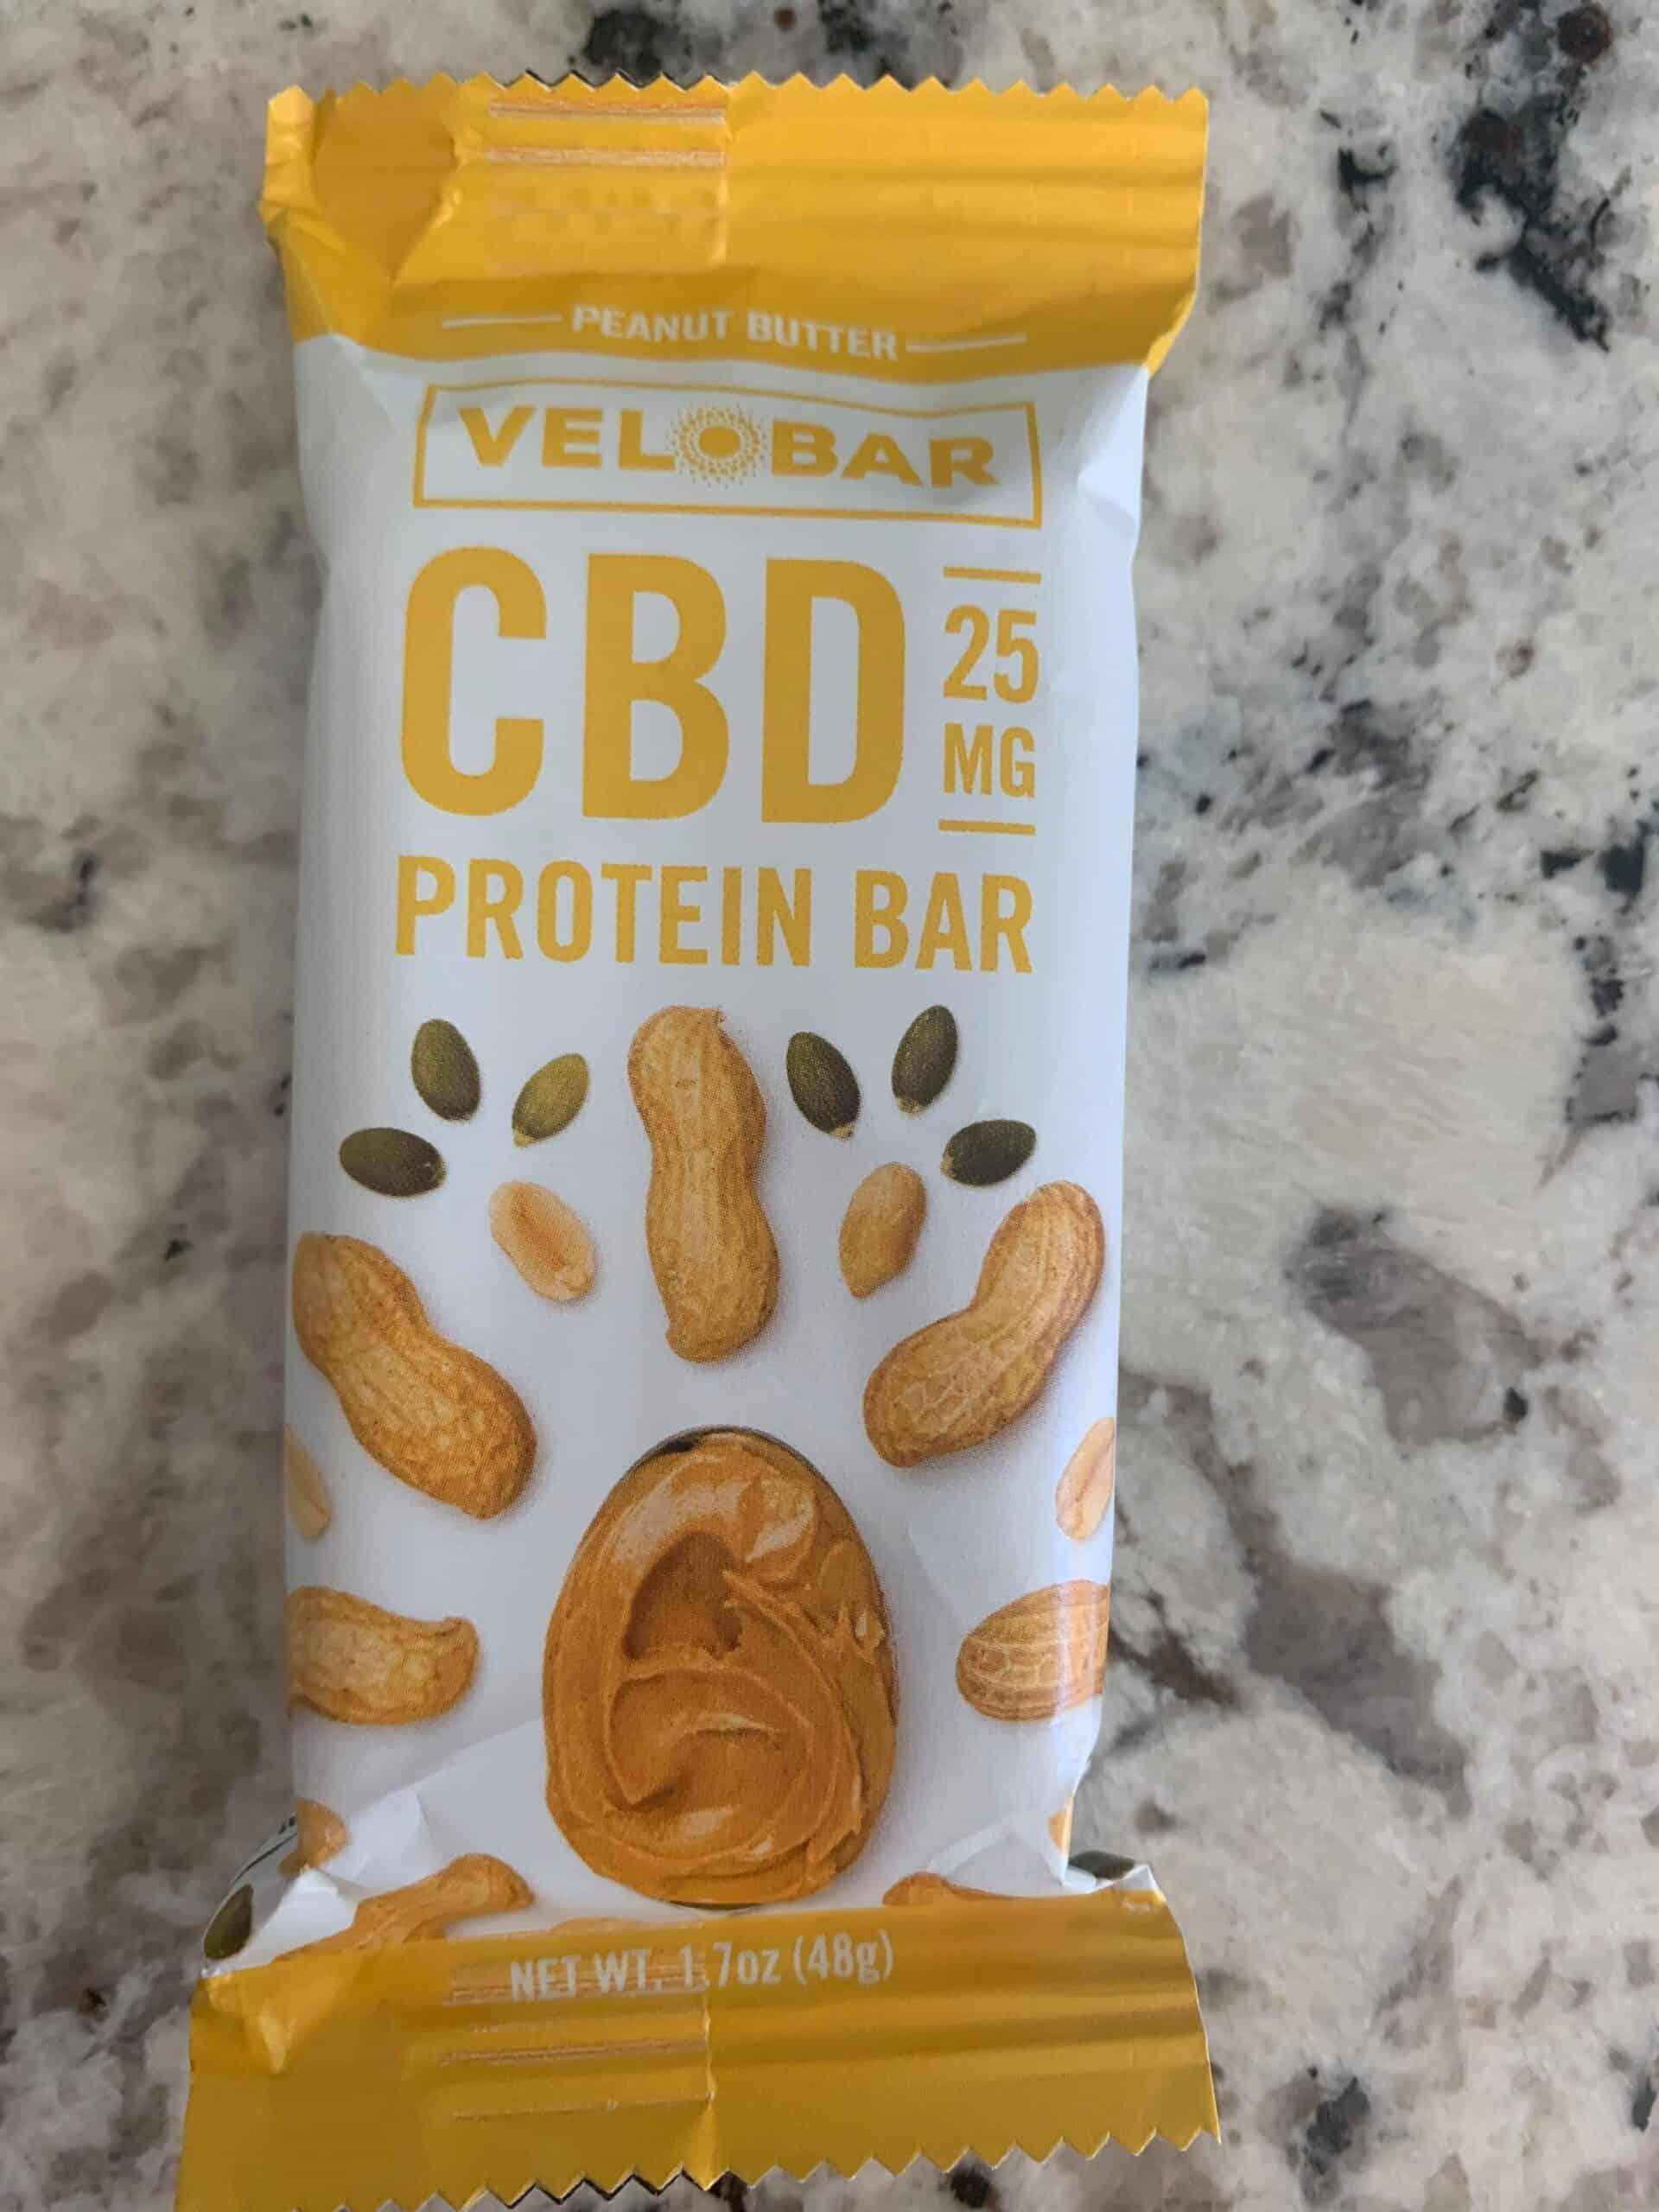 Velobar protein bar peanut butter save on cannabis review